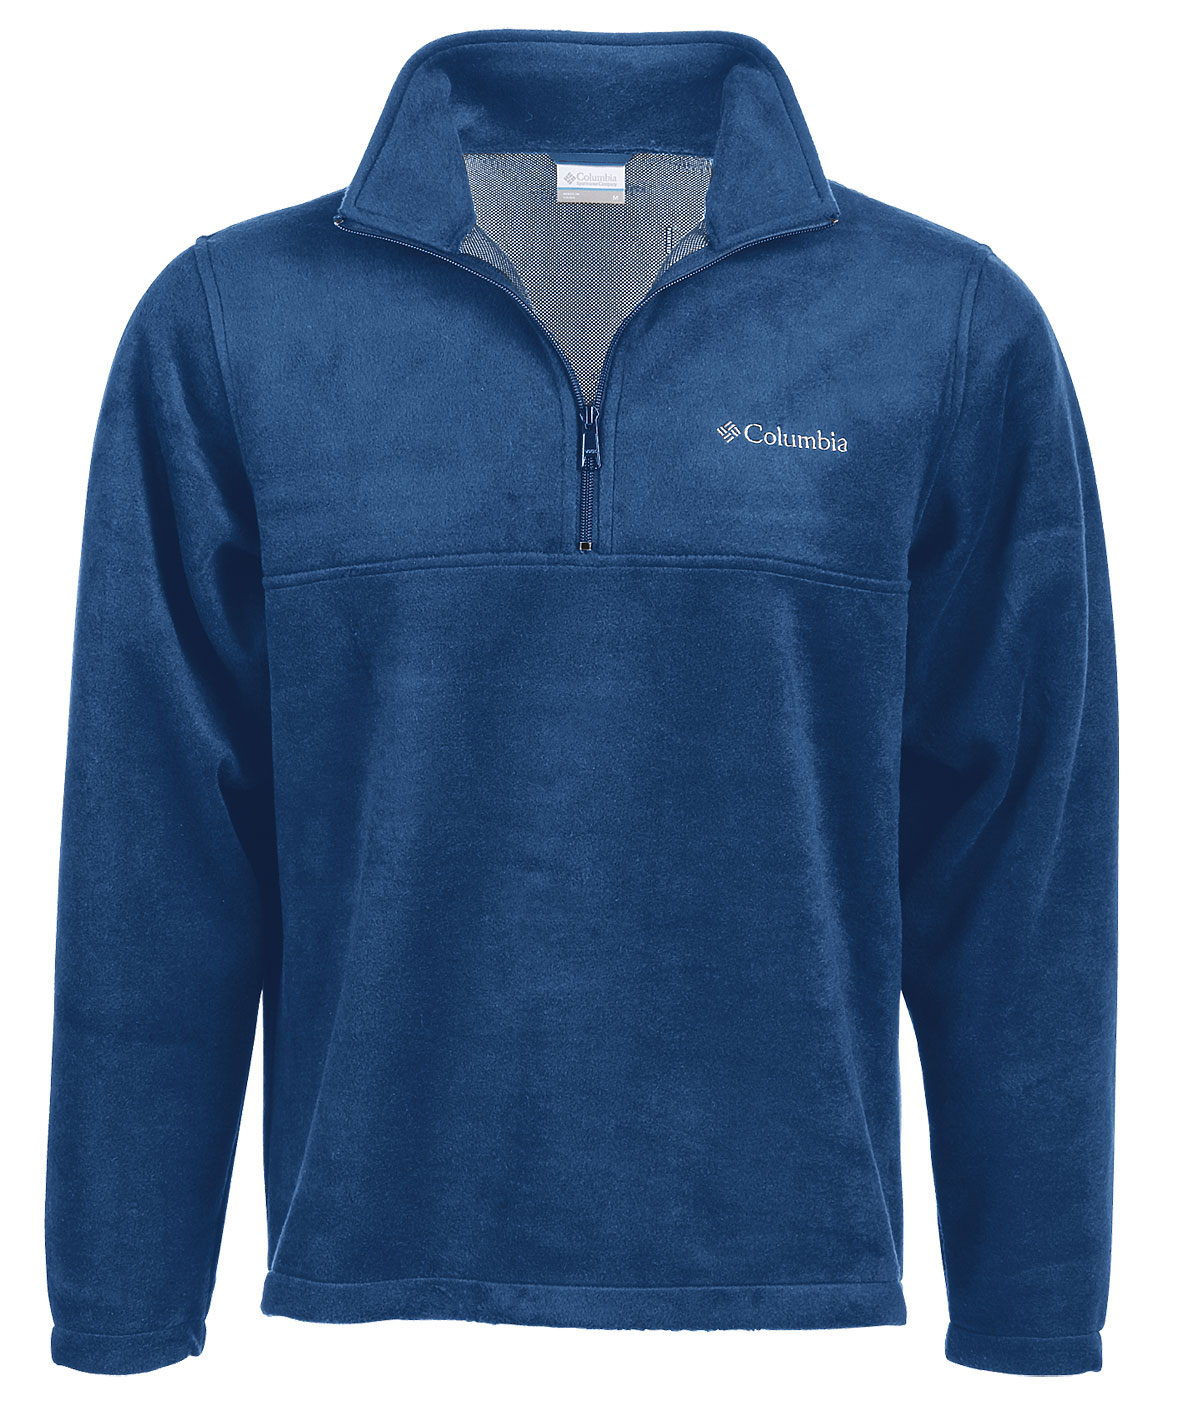 Columbia Mens Dotswarm� Half-Zip Fleece Pullover